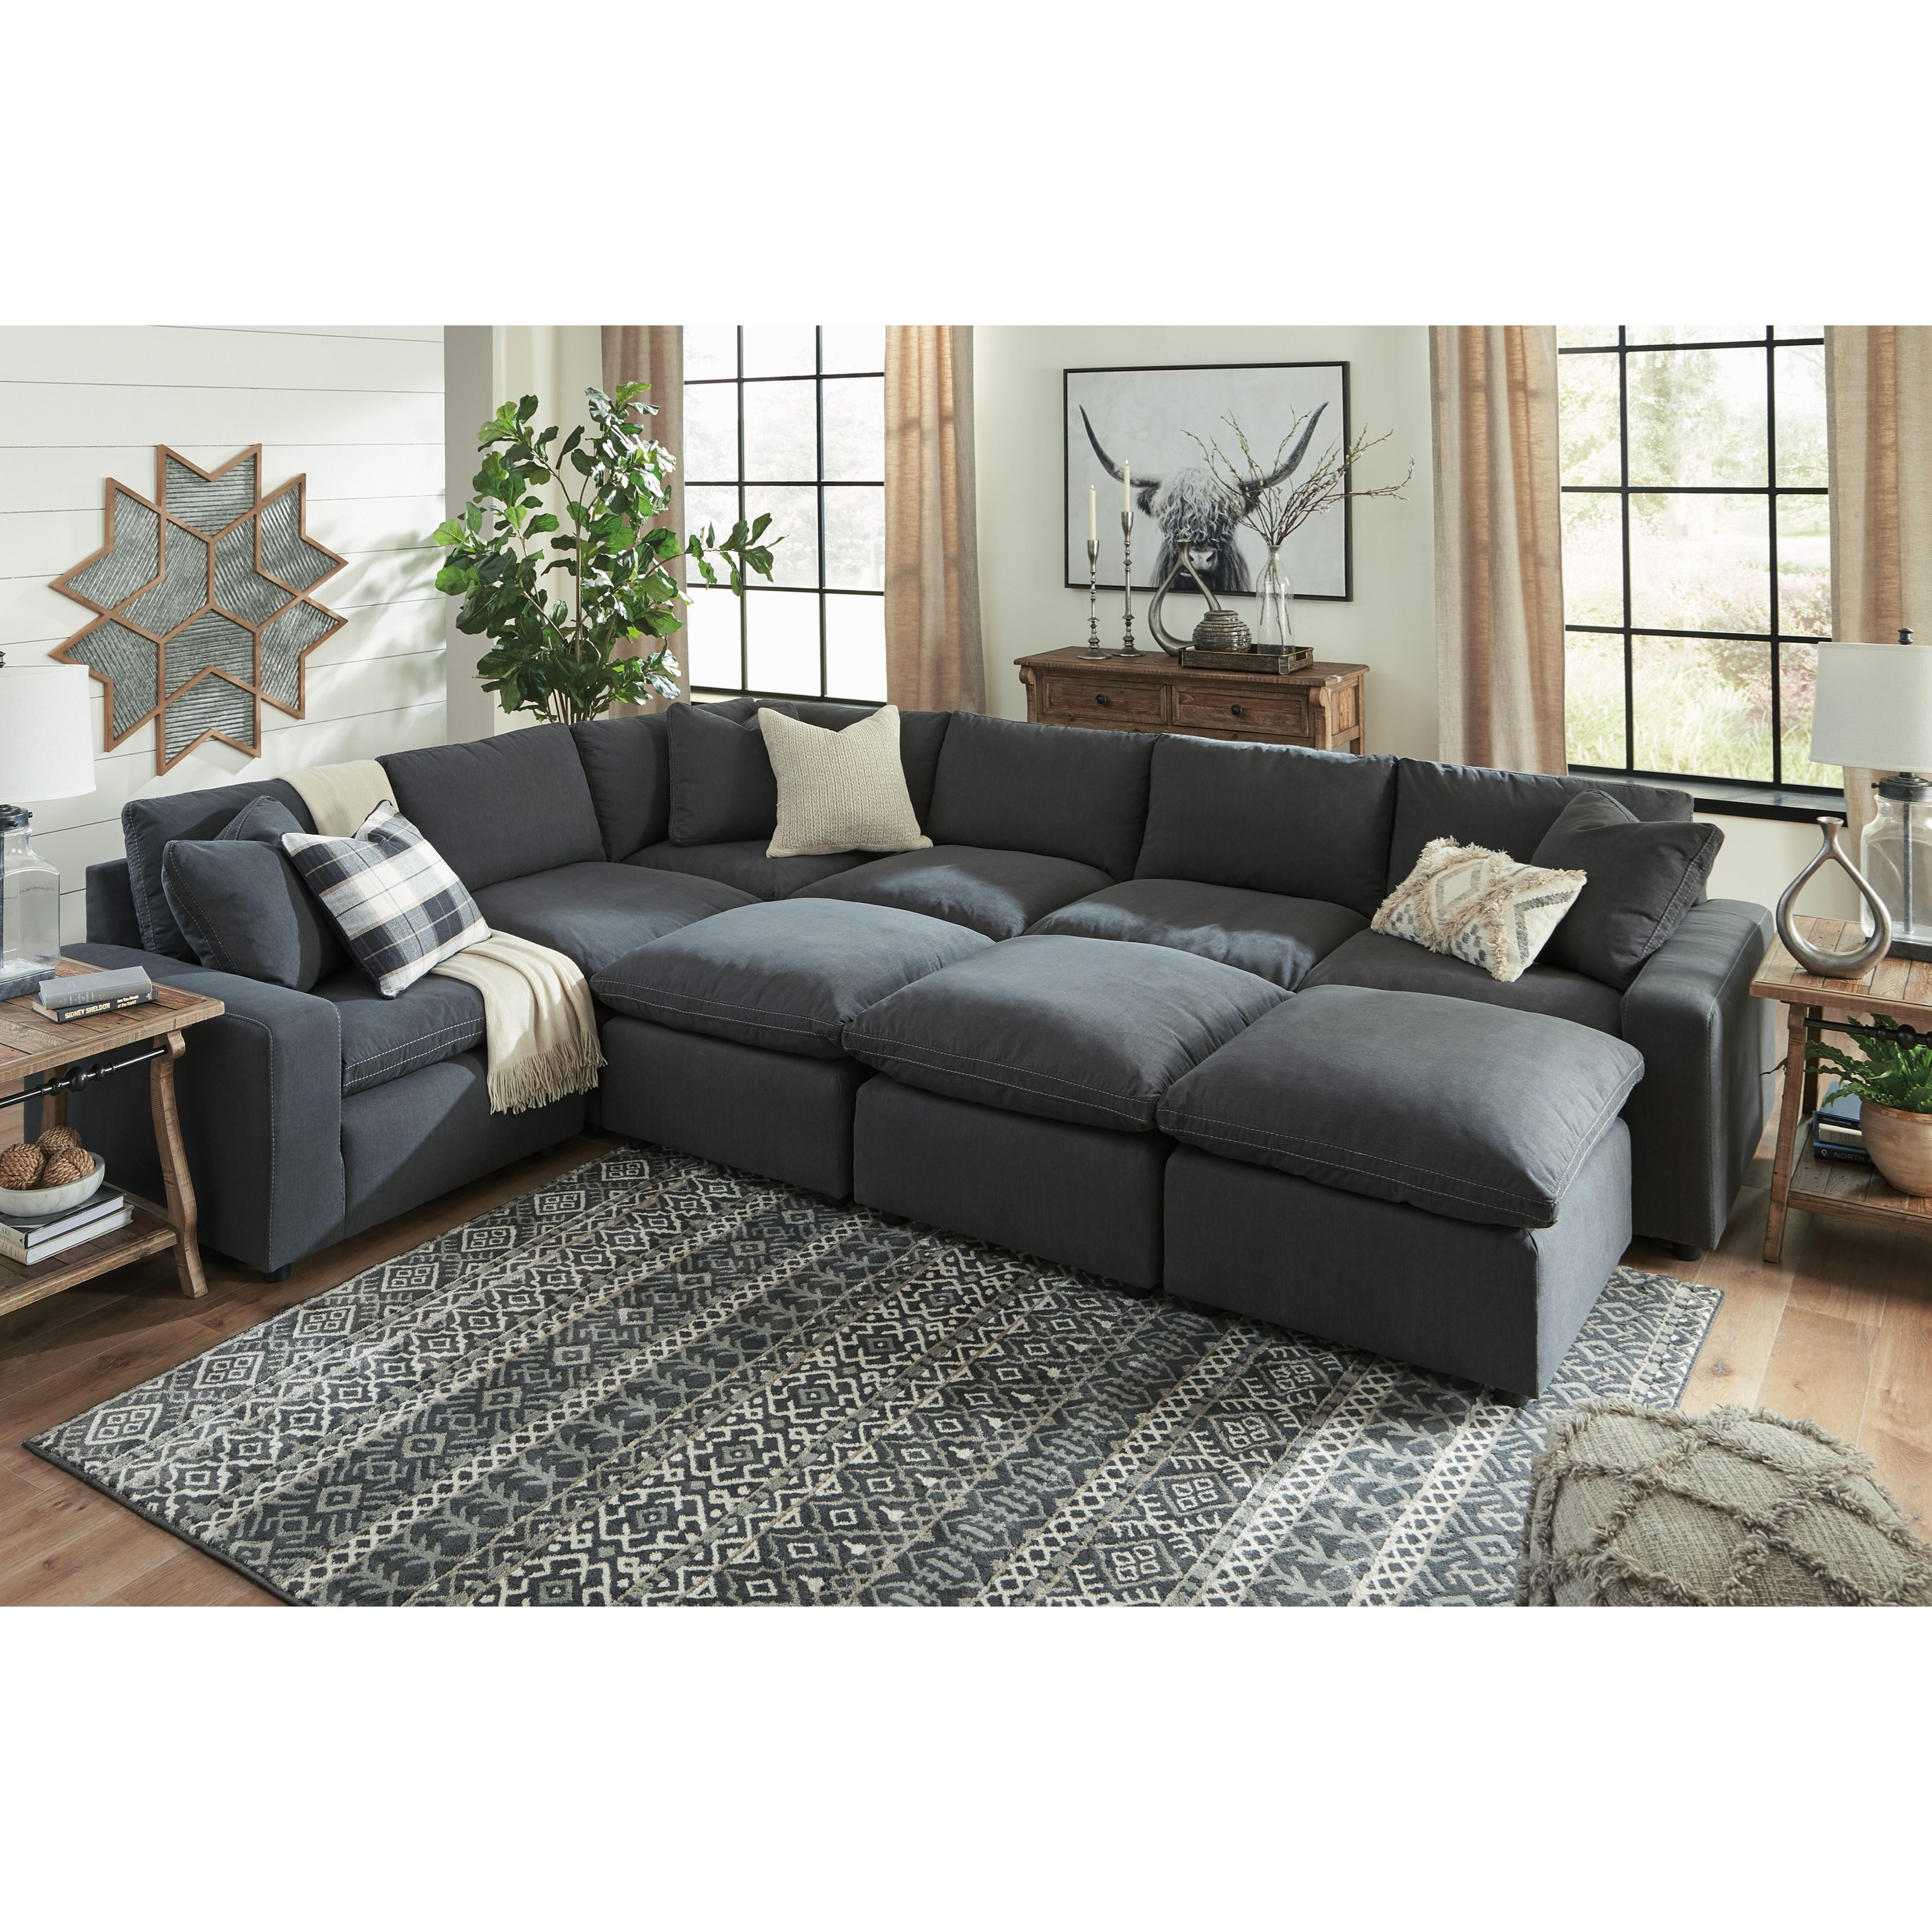 Signature Design By Ashley Savesto Casual Contemporary 9 Piece Sectional Set Wayside Furniture